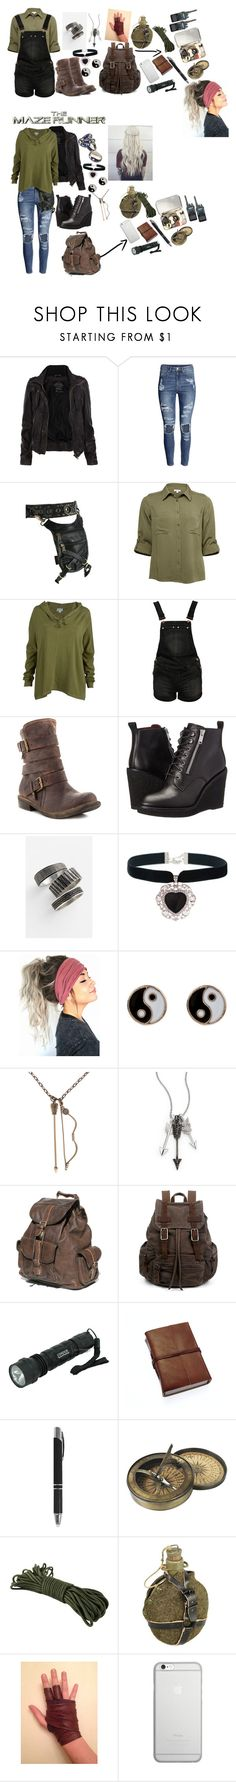 """""""Another nother one!"""" by heyimryann ❤ liked on Polyvore featuring AllSaints, H&M, Holster, RVCA, Noisy May, Zigi Soho, Marc by Marc Jacobs, Bonnie Jonas, Anello and Accessorize"""